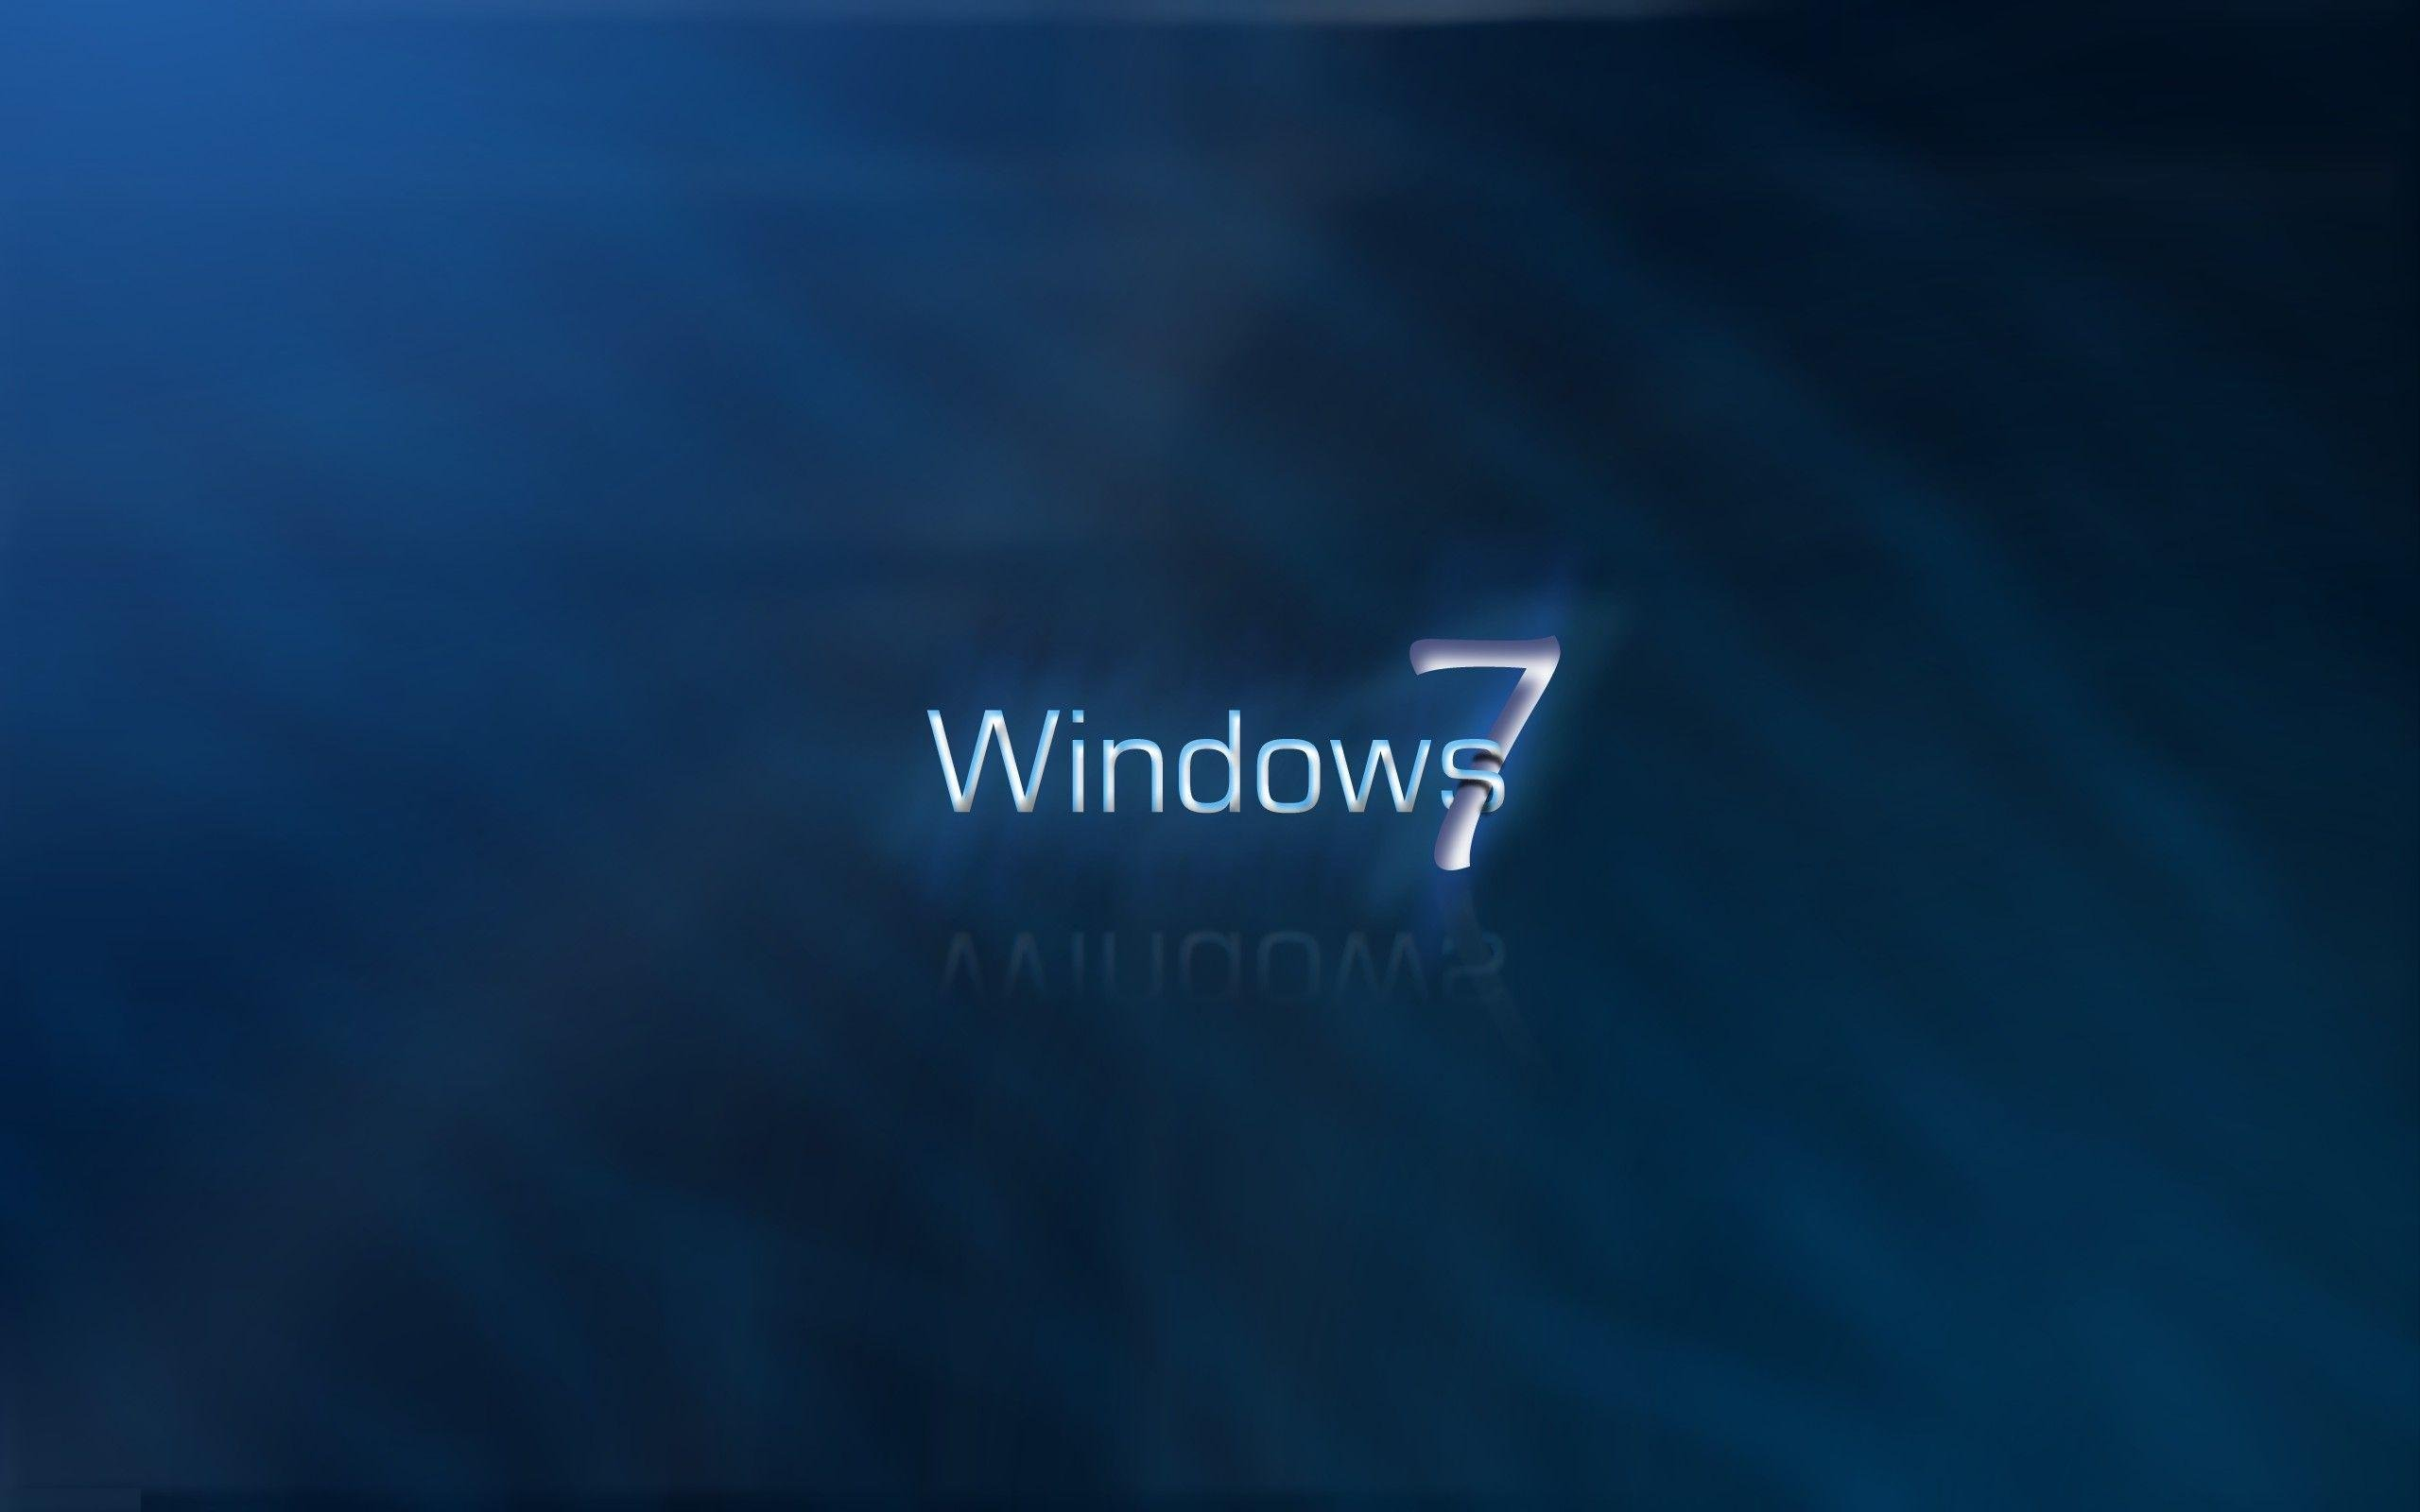 Windows 7 Wallpapers Top Free Windows 7 Backgrounds